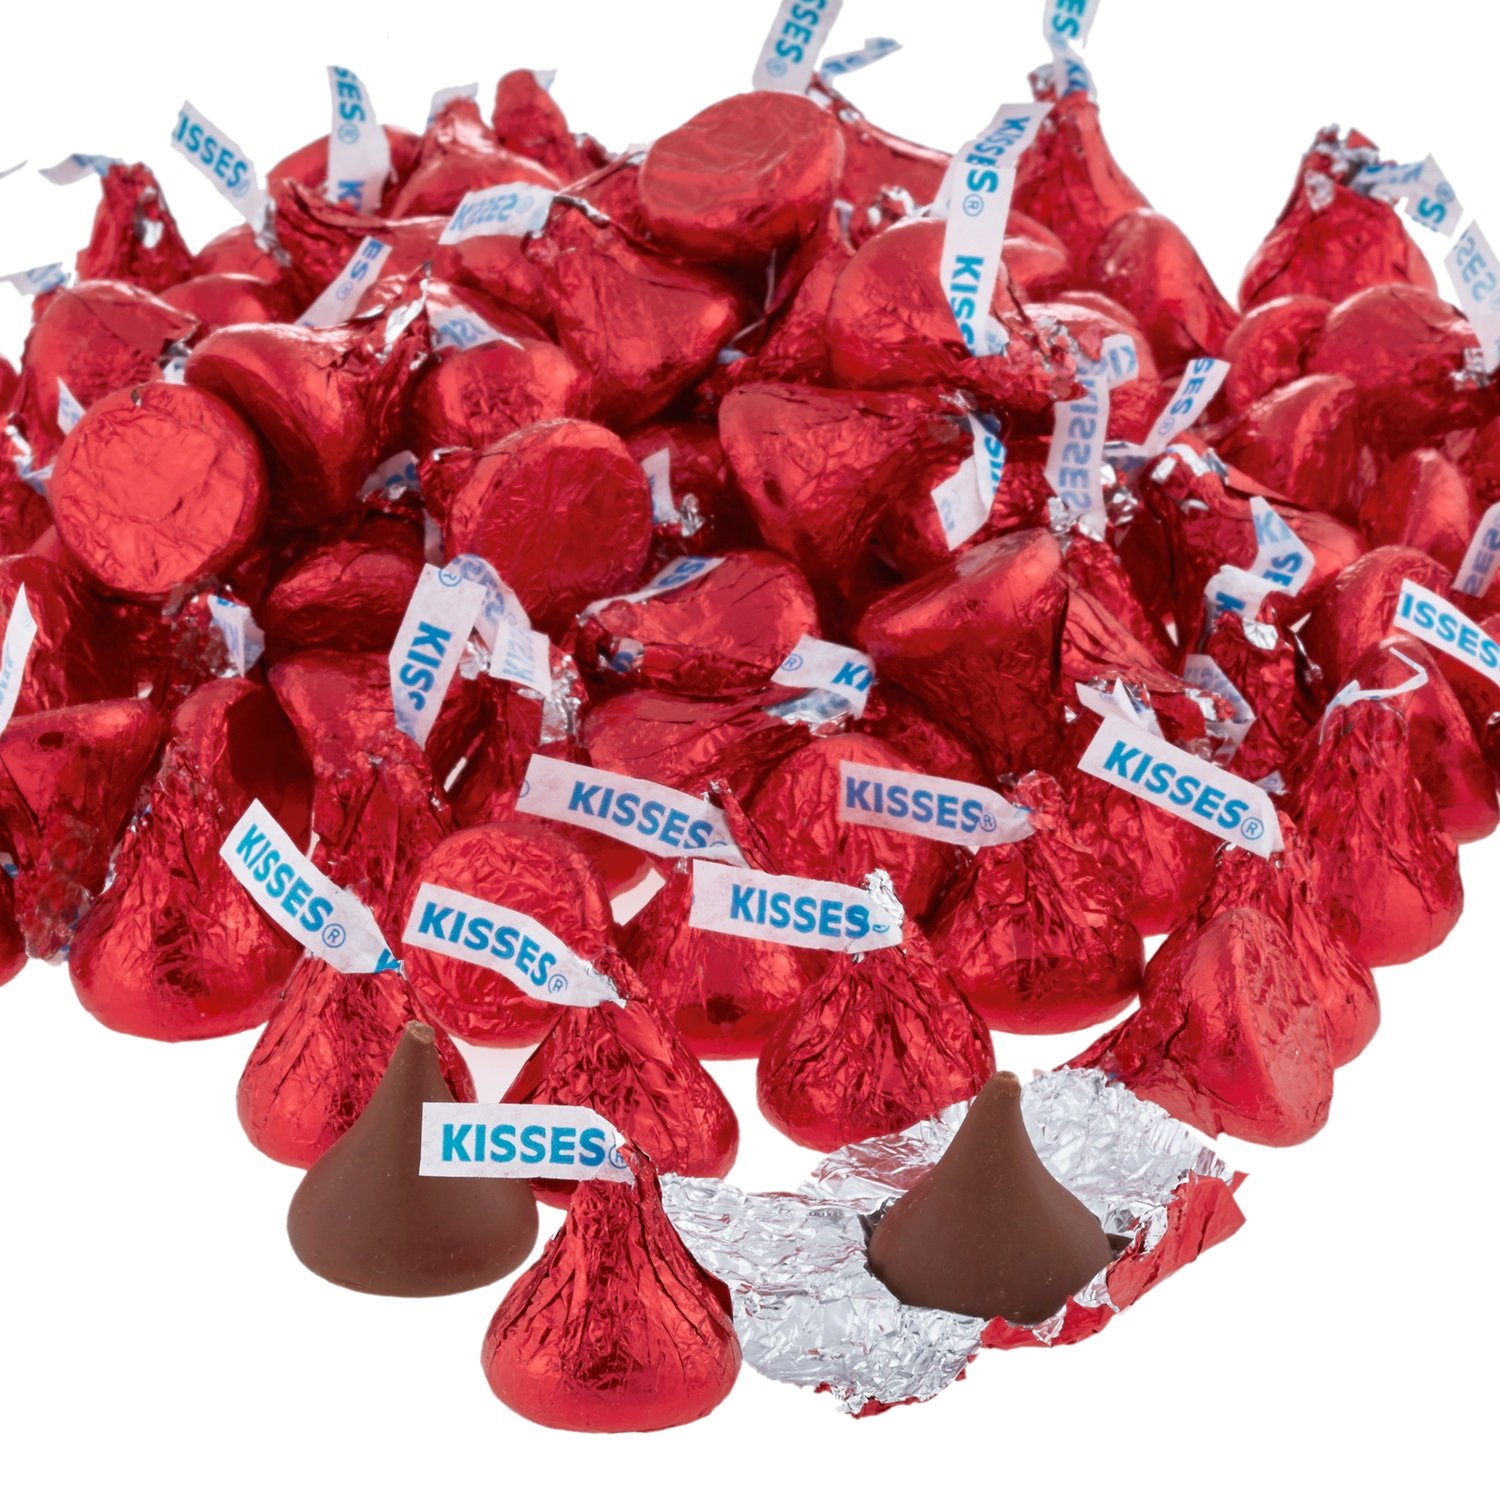 HERSHEY'S KISSES Chocolate Candy, Red Foils, 4.1lb Bulk Candy, approx. 400 Pieces. Perfect for Graduation and 4th of July Decorations by Kisses (Image #6)